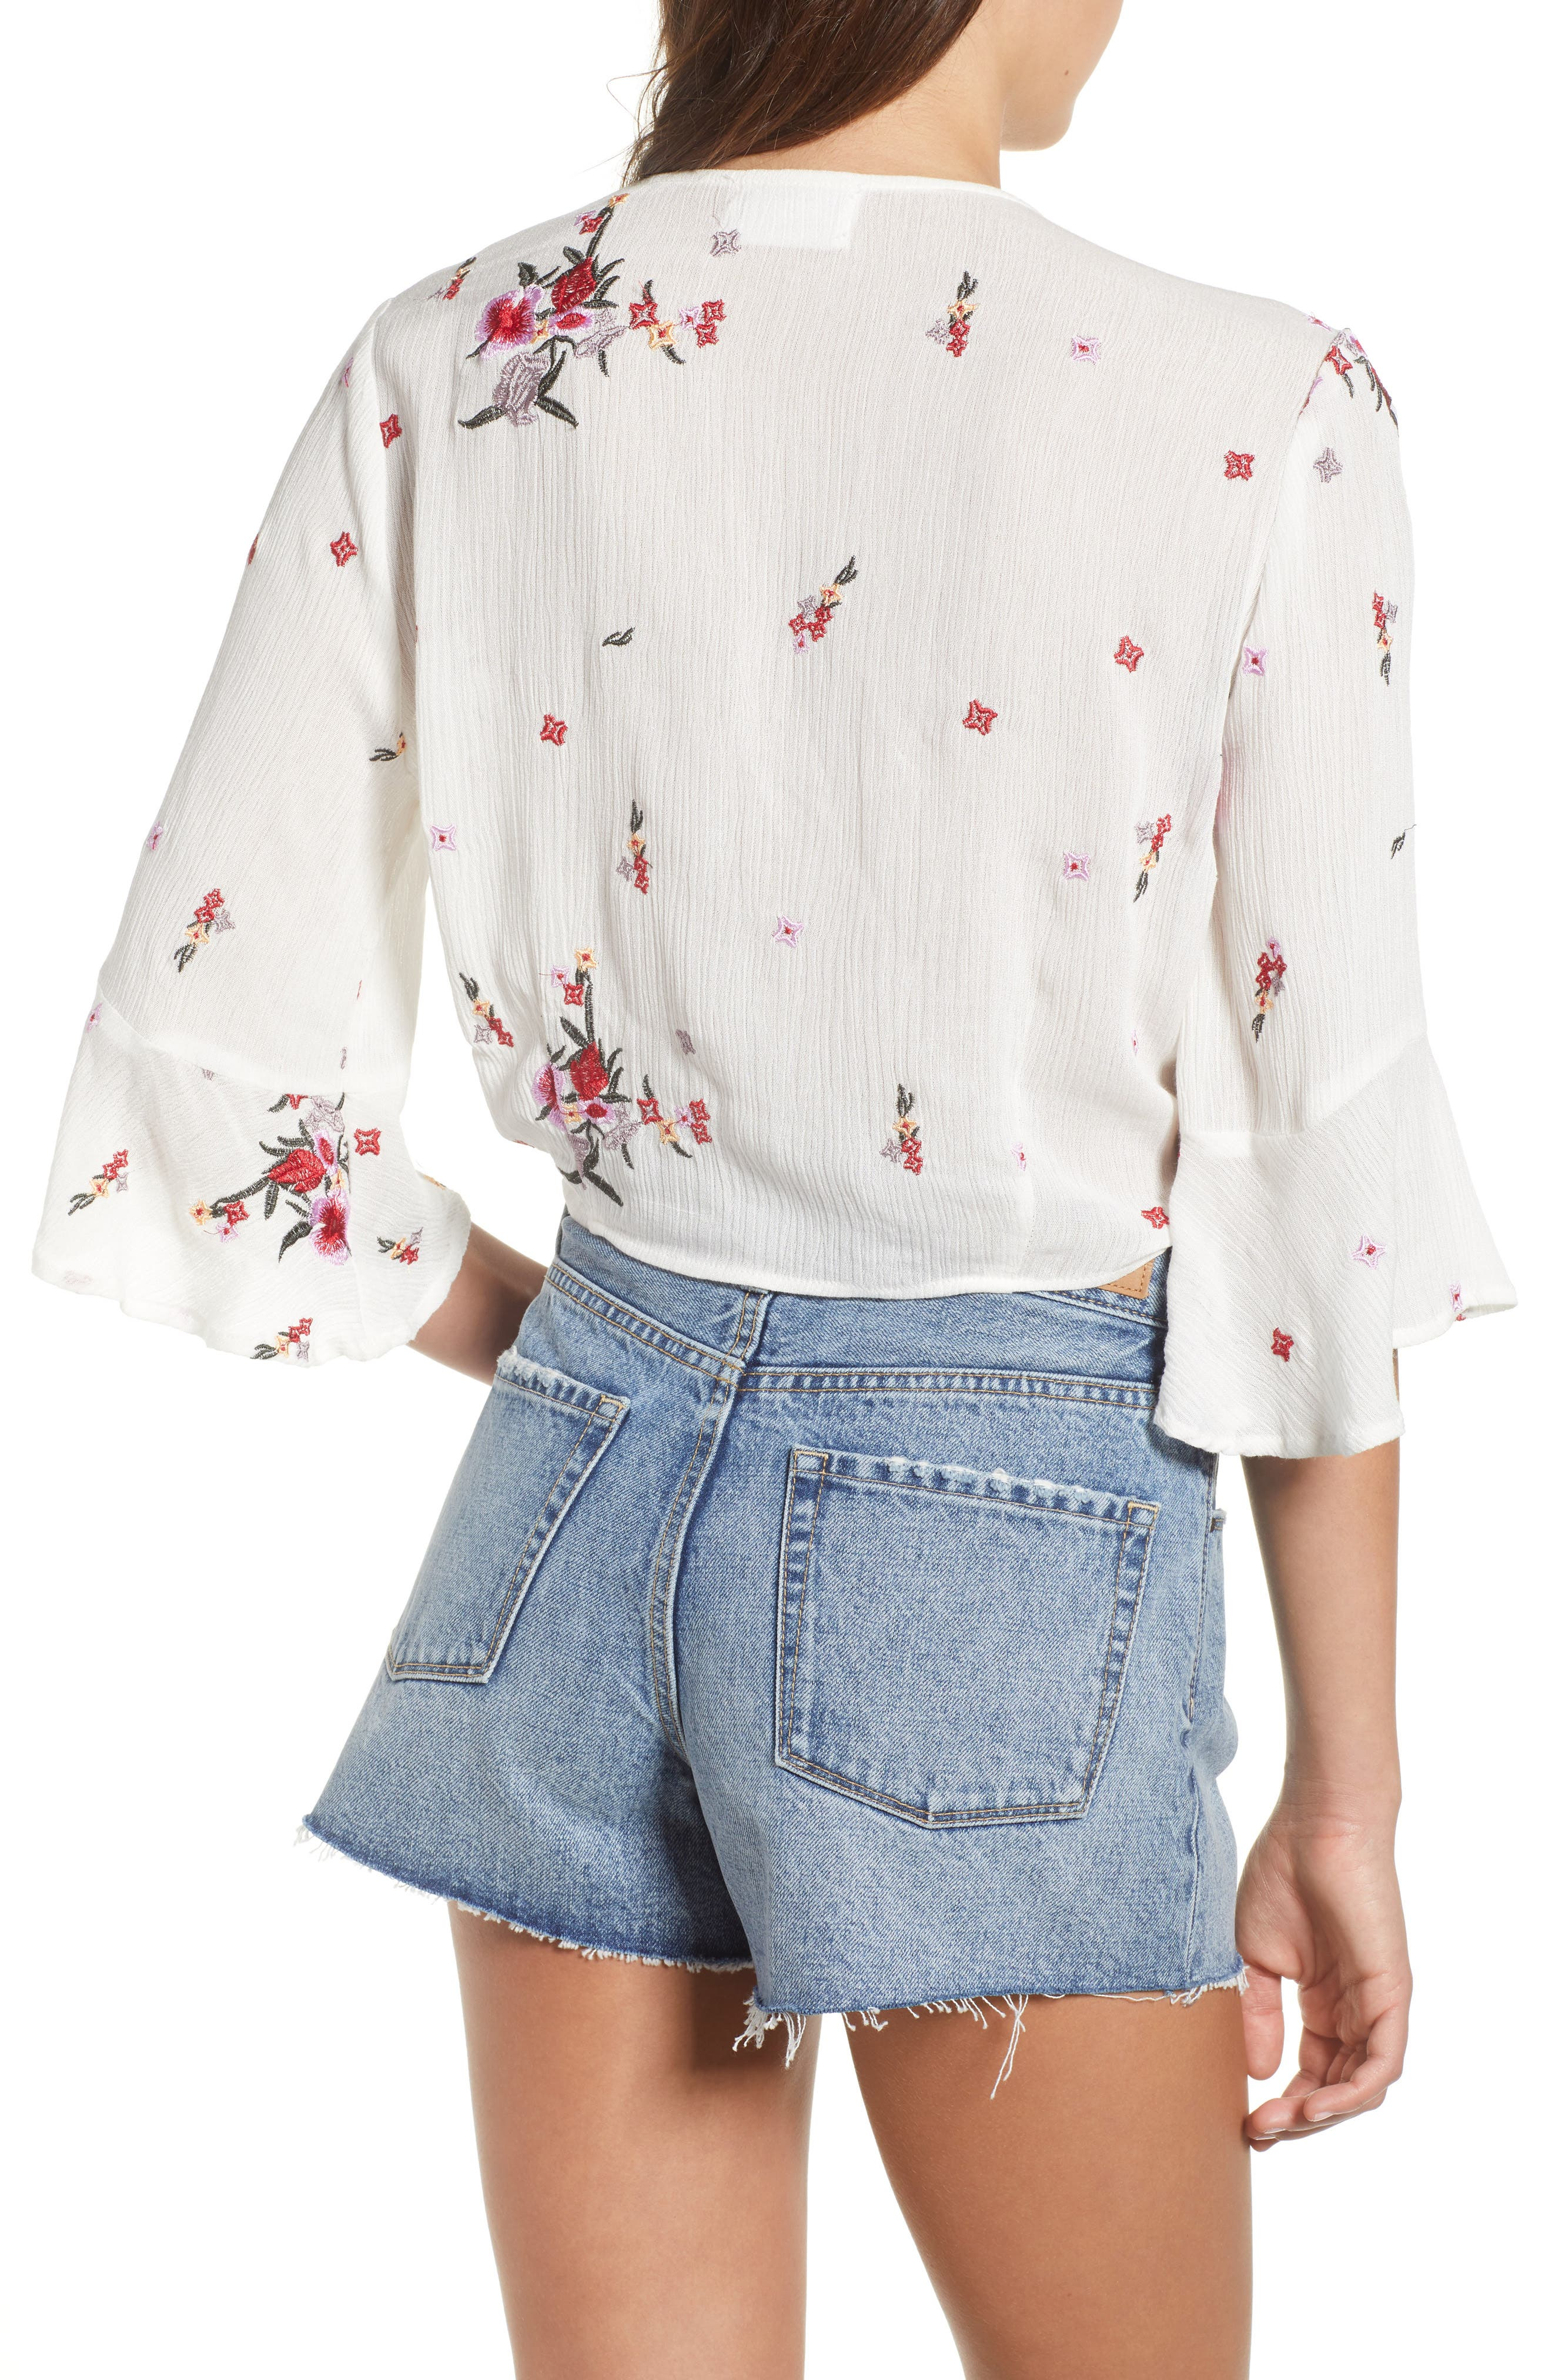 Senorita Embroidered Crop Top,                             Alternate thumbnail 3, color,                             White Floral